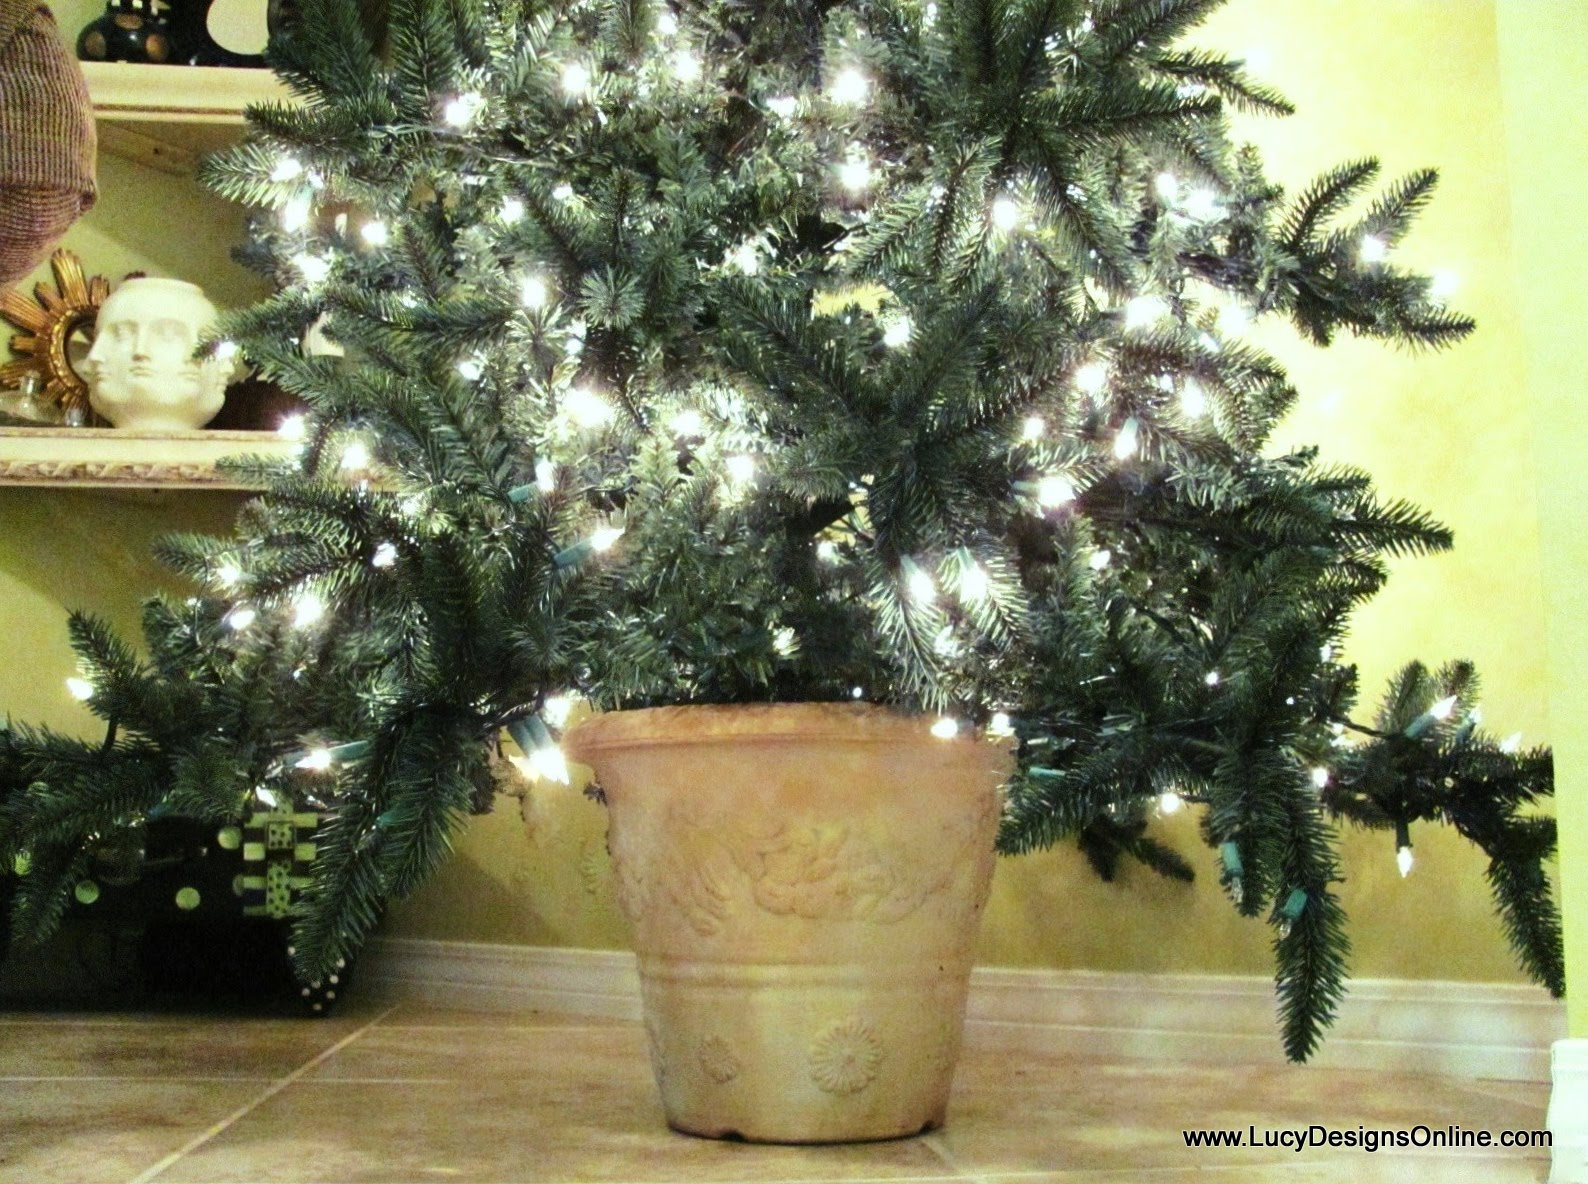 Artificial christmas tree in a planter pot diy lucy designs christmas tree in an urn or pot how to diy solutioingenieria Choice Image